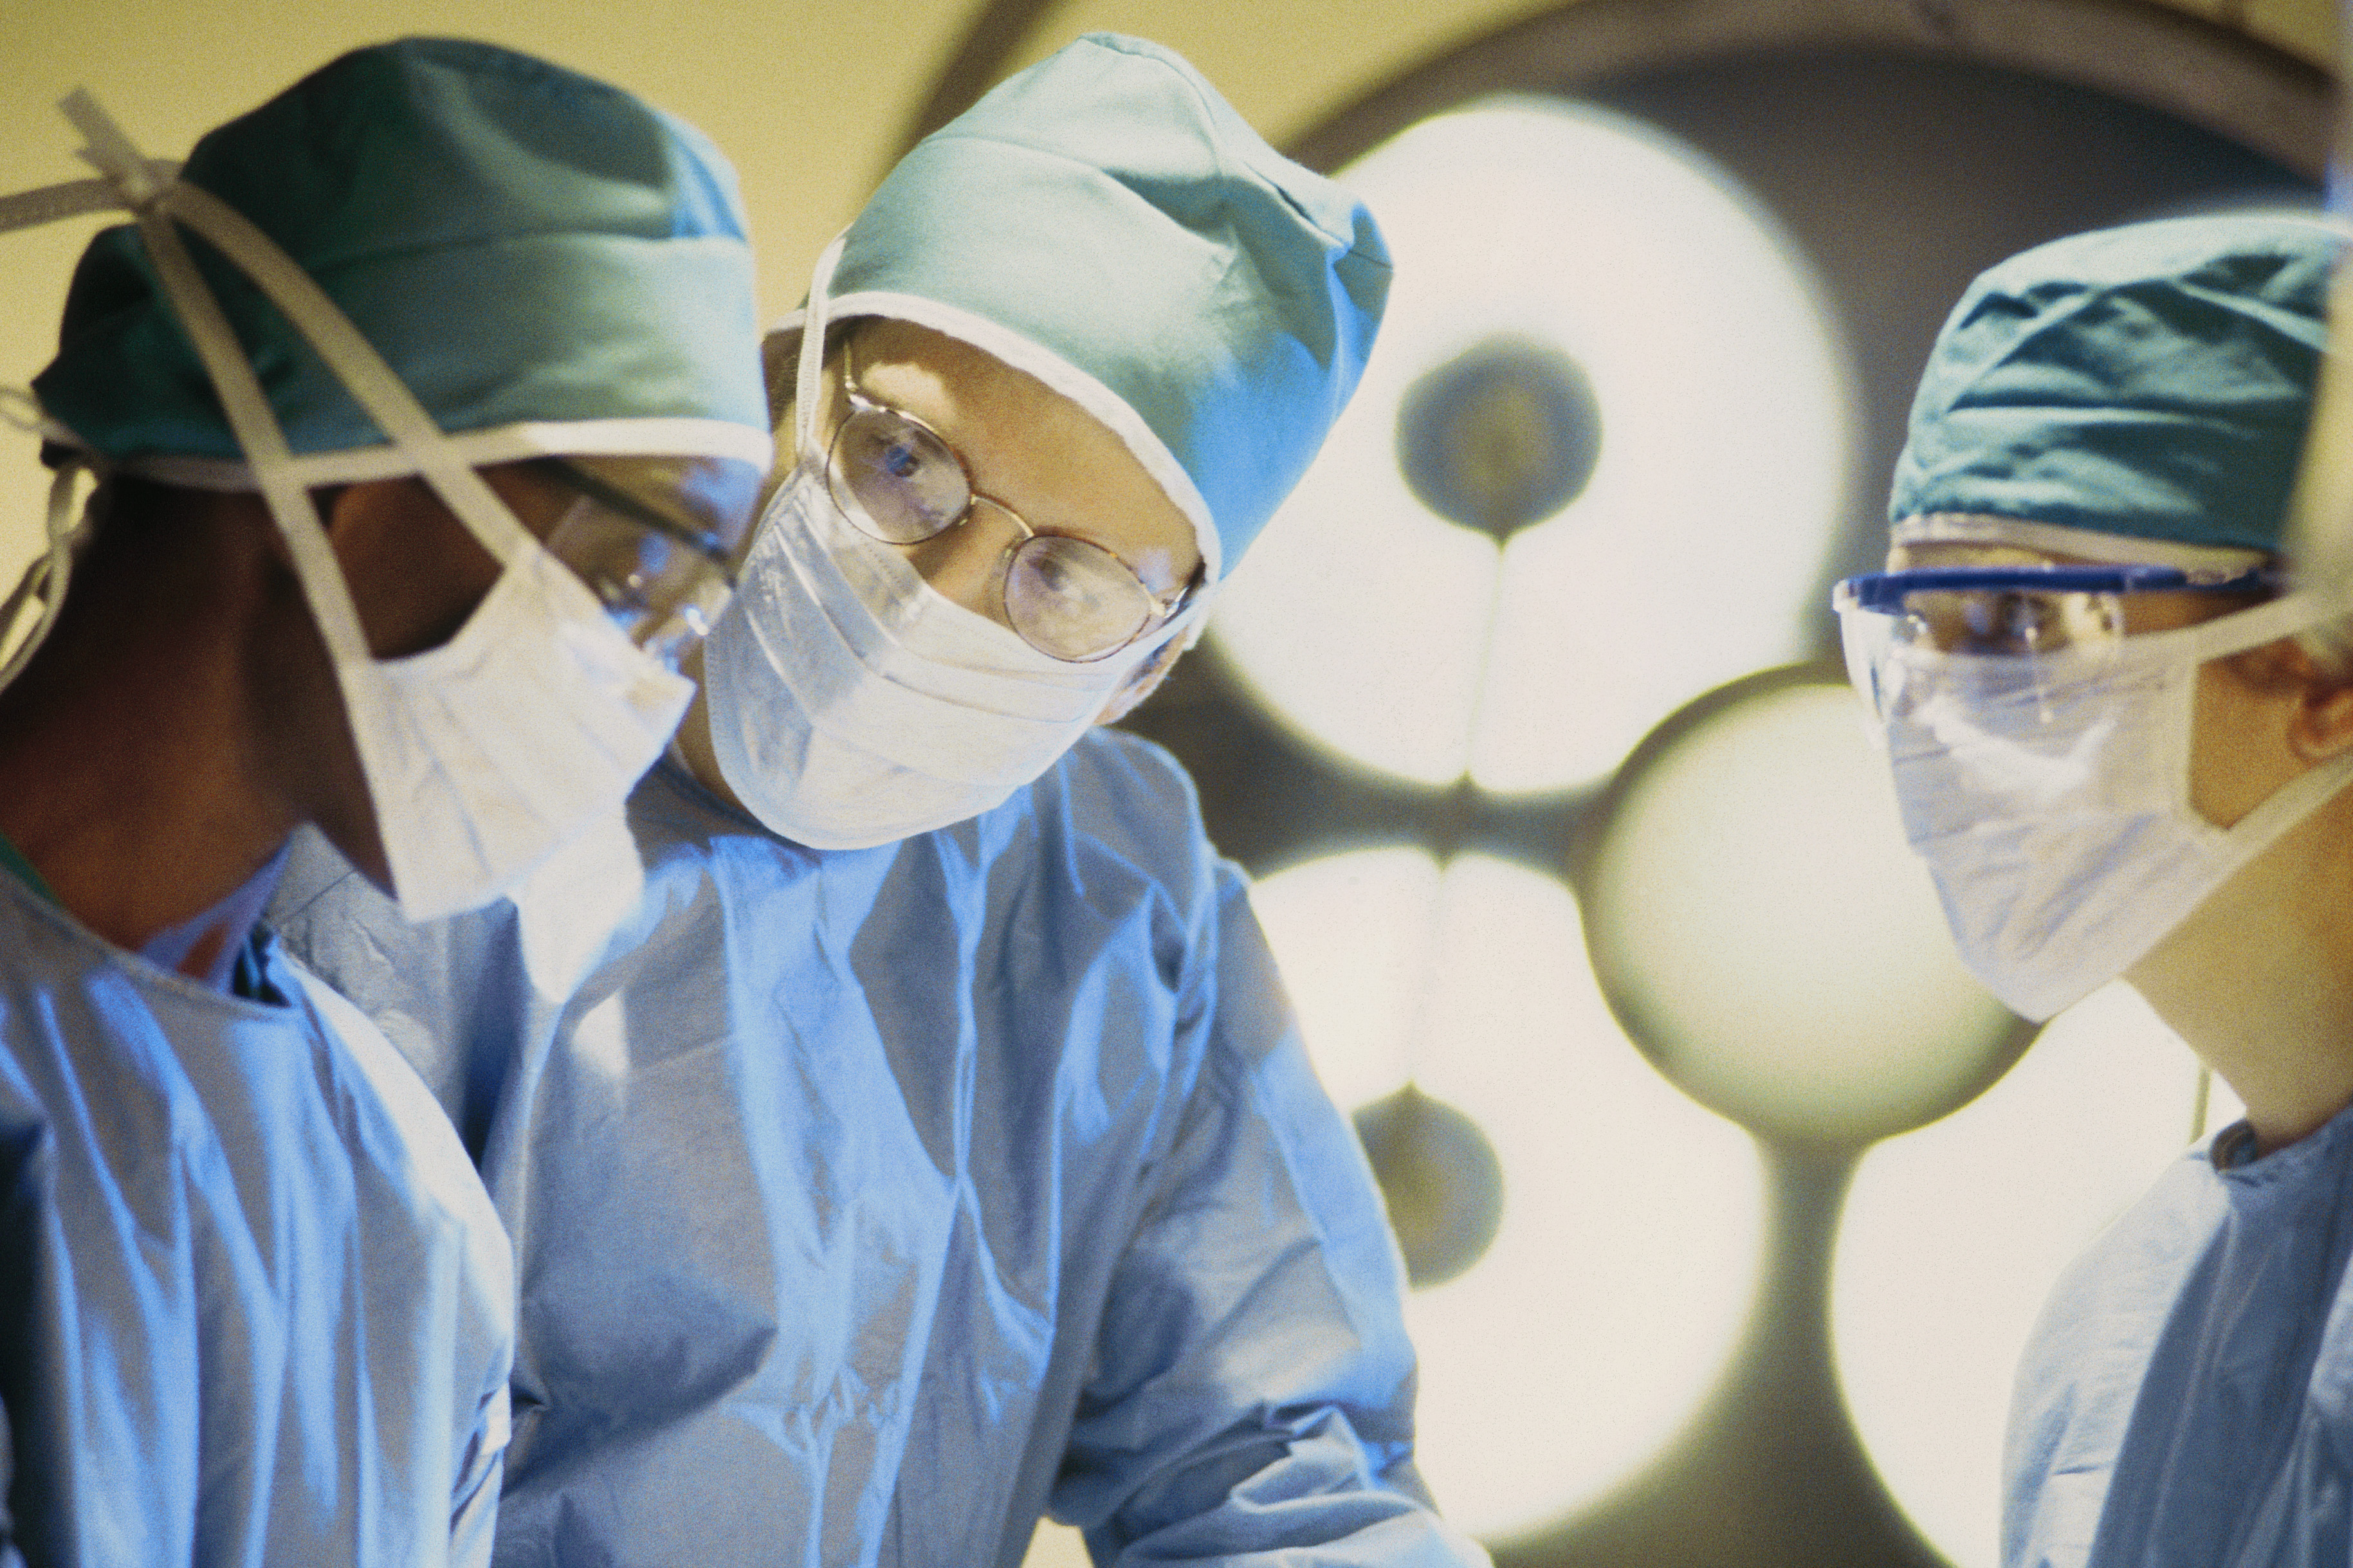 Choosing a Surgeon: How Much Experience is Enough?